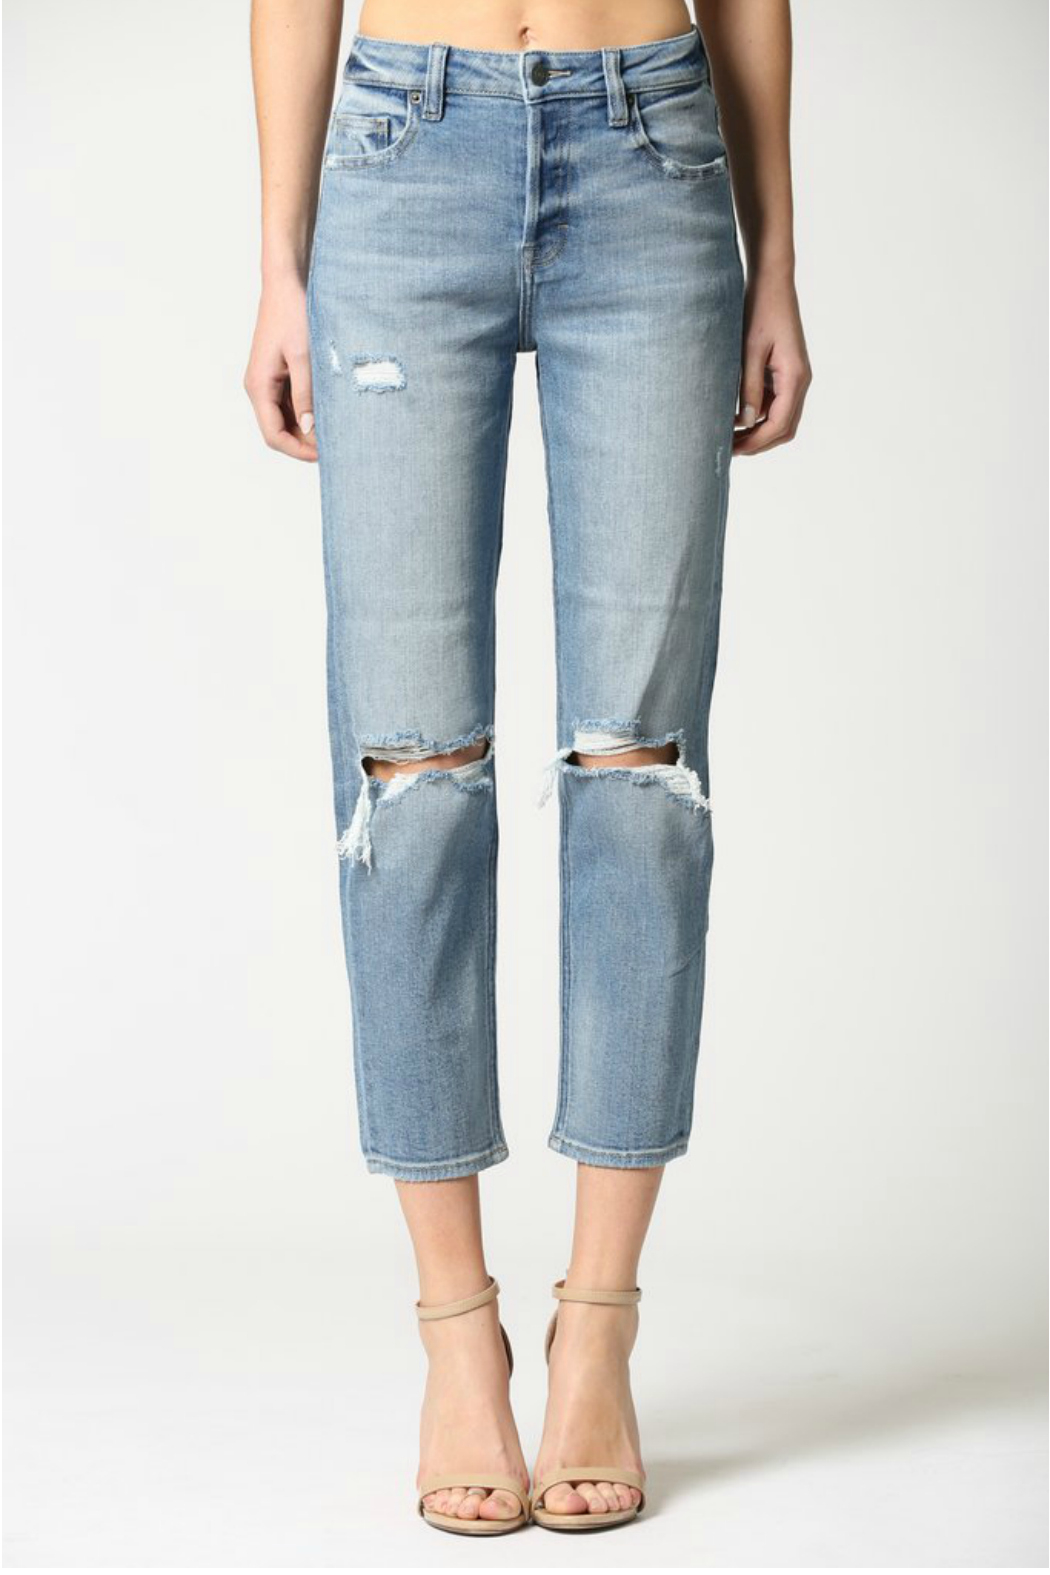 Hidden Jeans Zoey Mom Jeans - Main Image